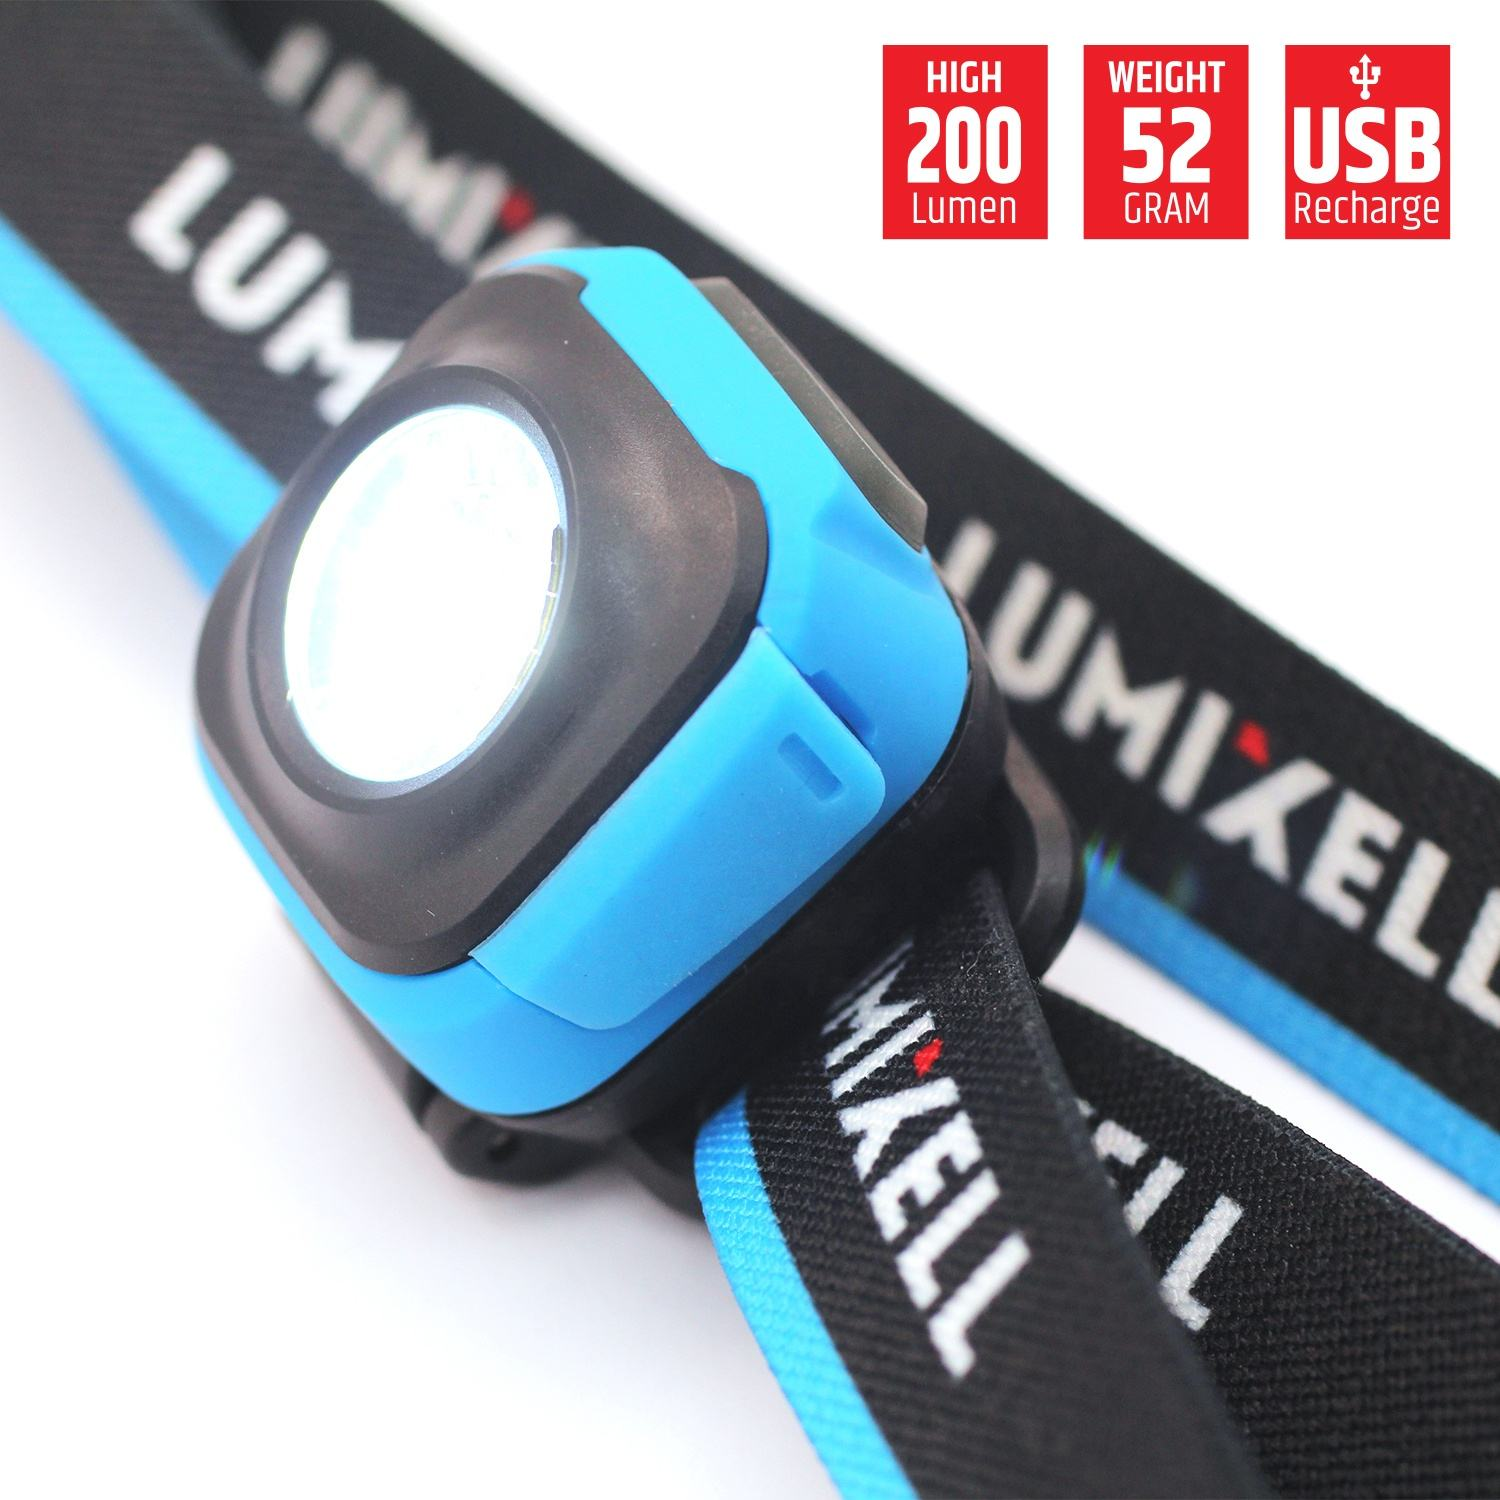 New Arrival small size super bright led outdoor headlamp rechargeable 200 lumen for camping